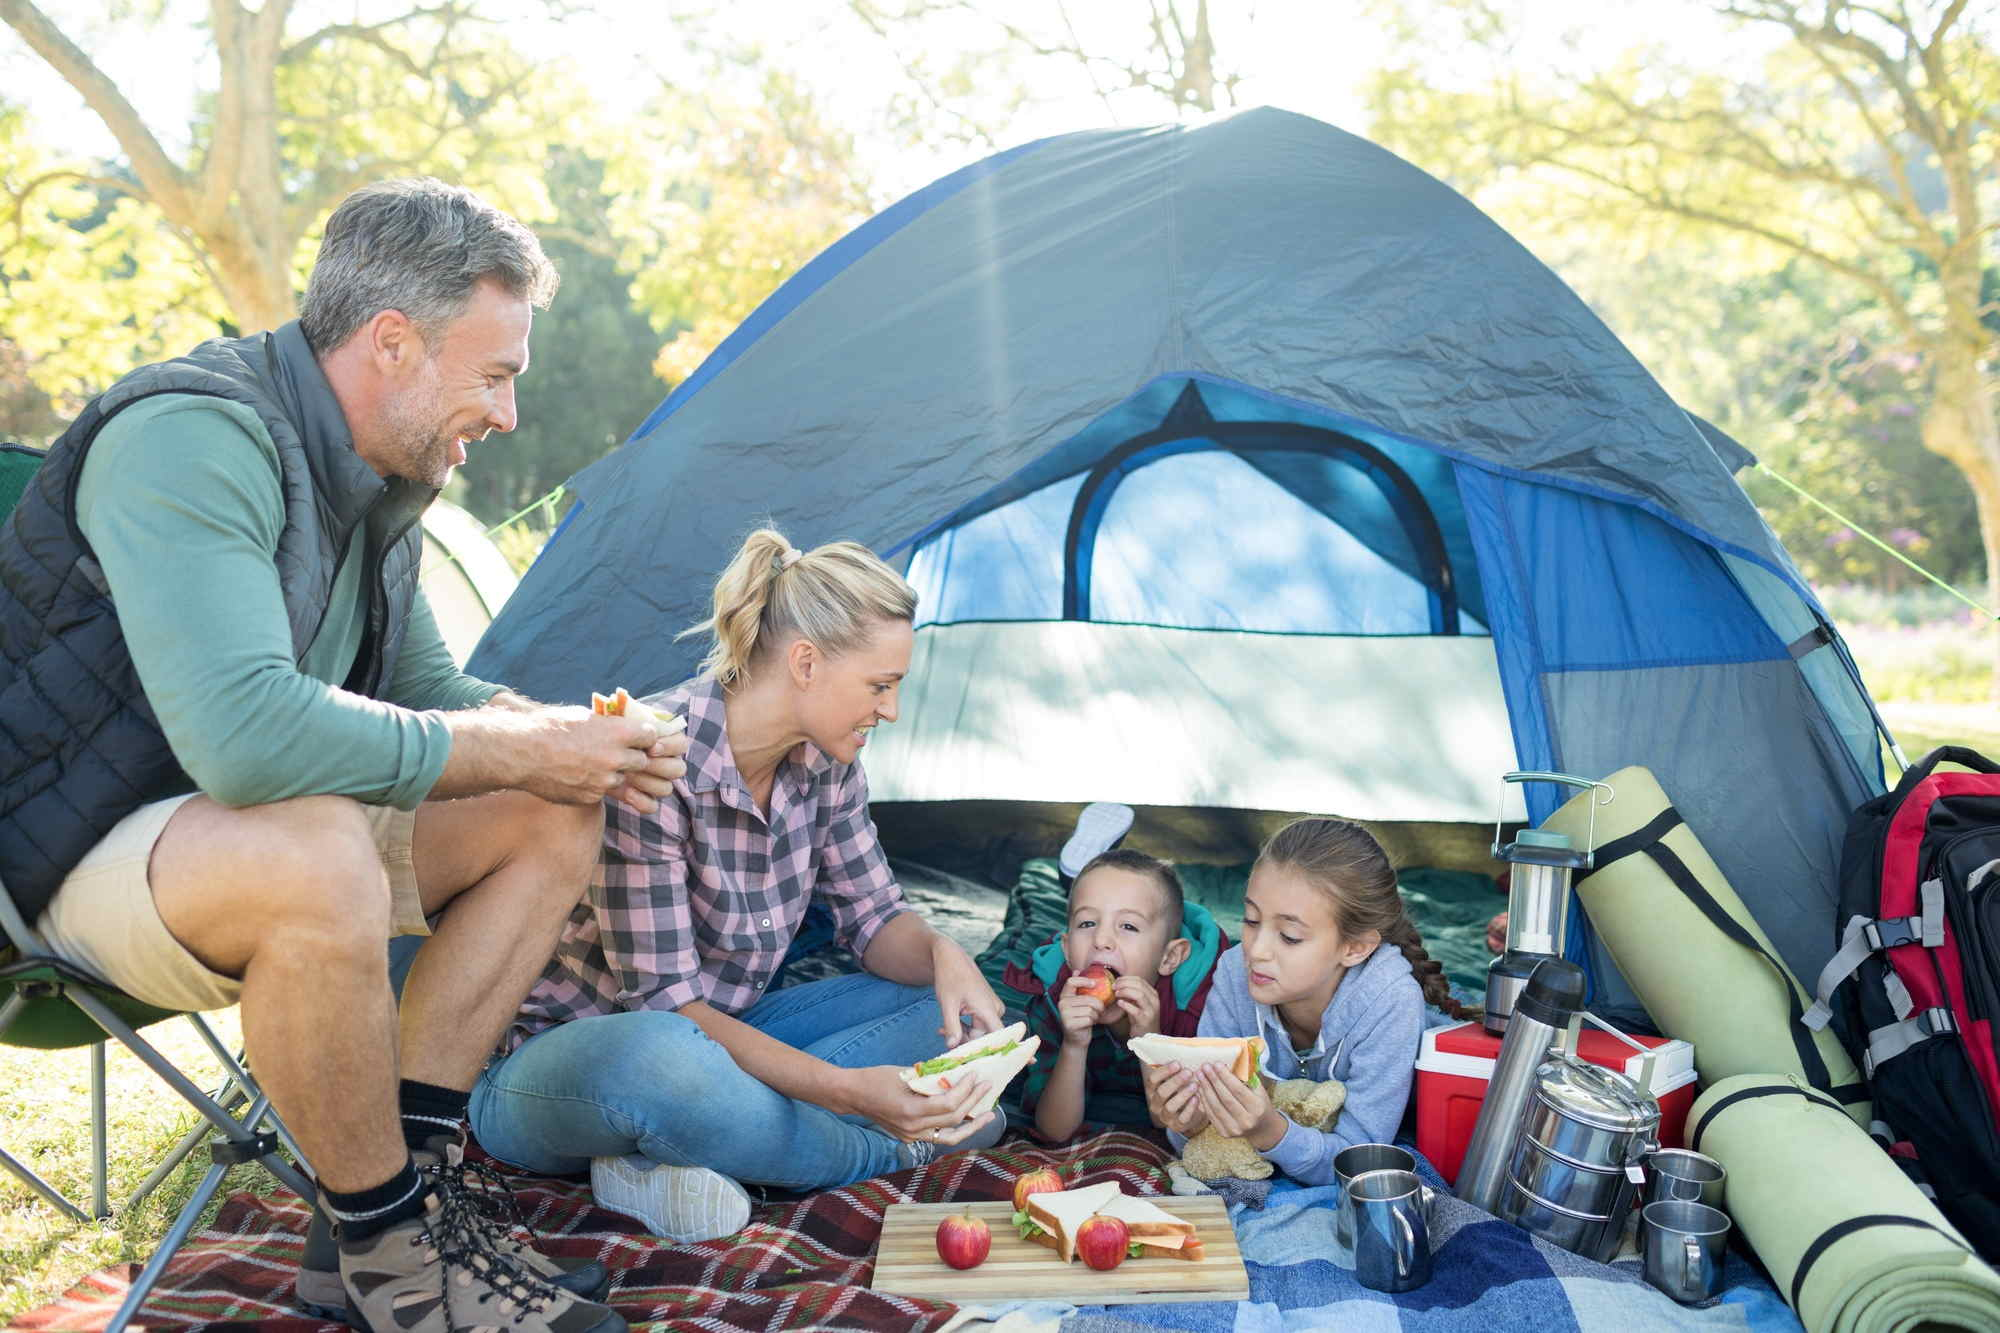 Kids Healthy While Camping